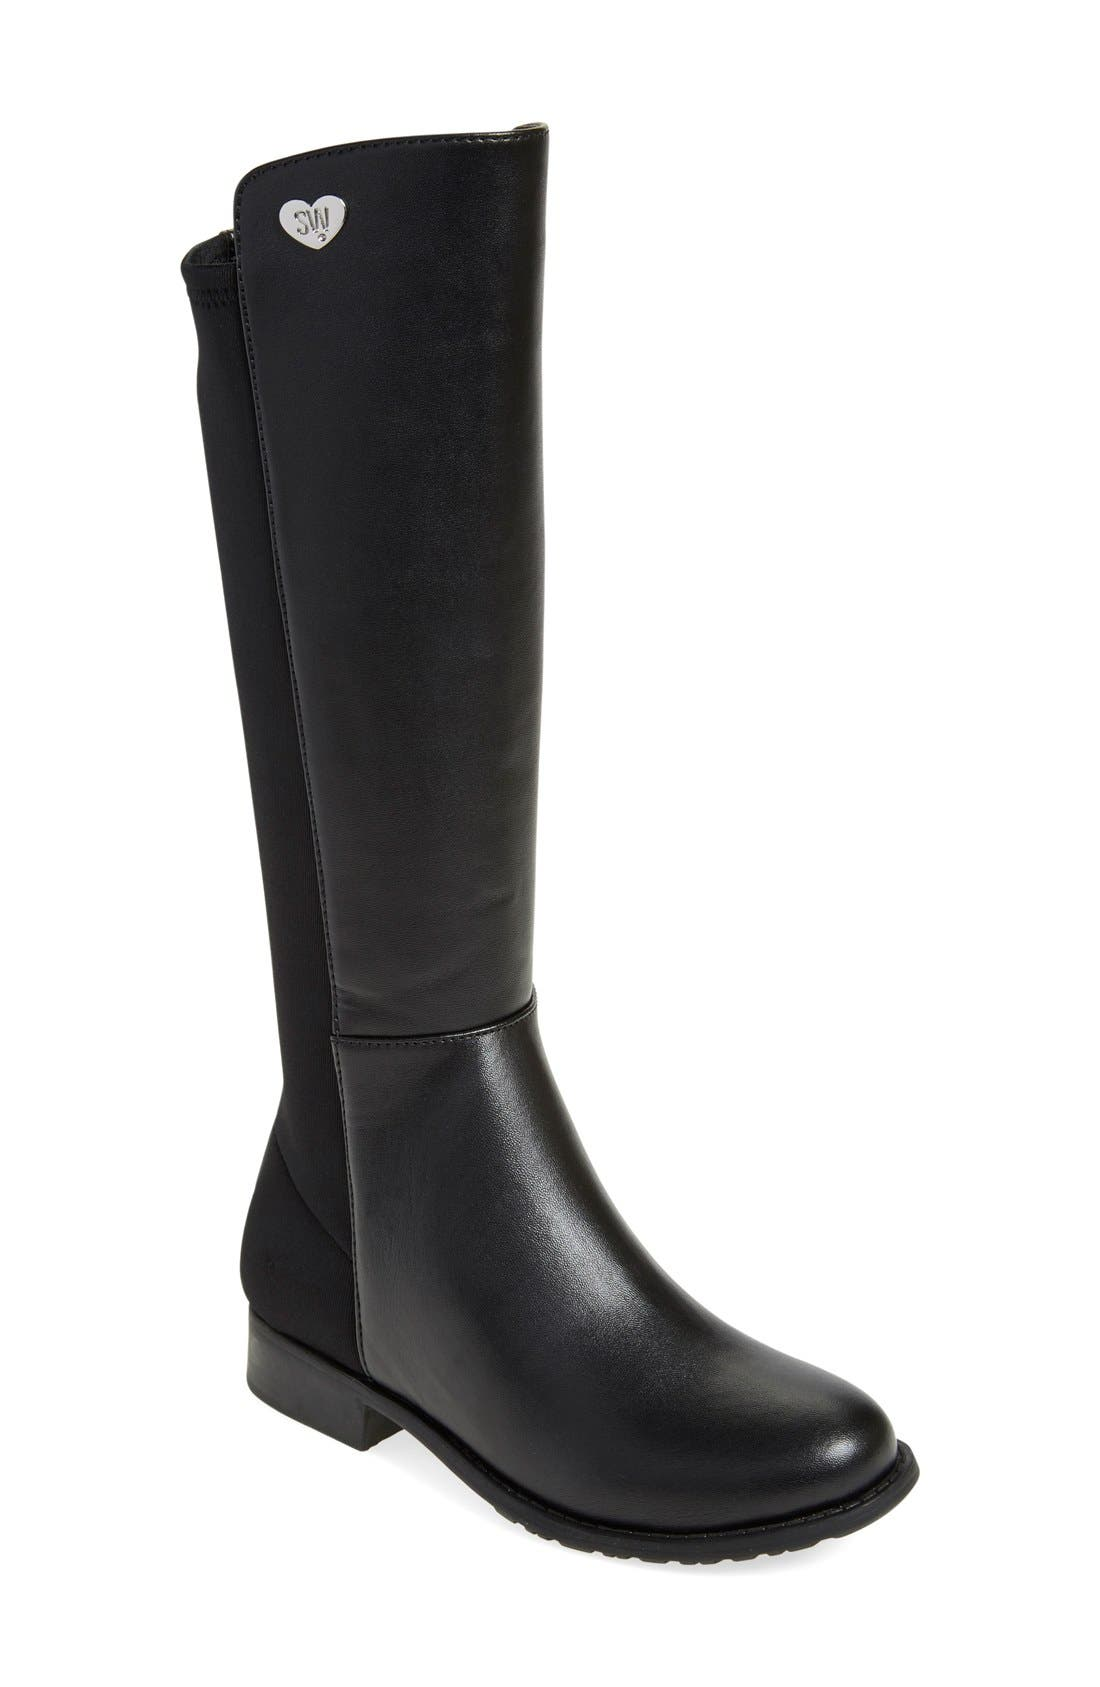 STUART WEITZMAN 50/50 Stretch Back Riding Boot